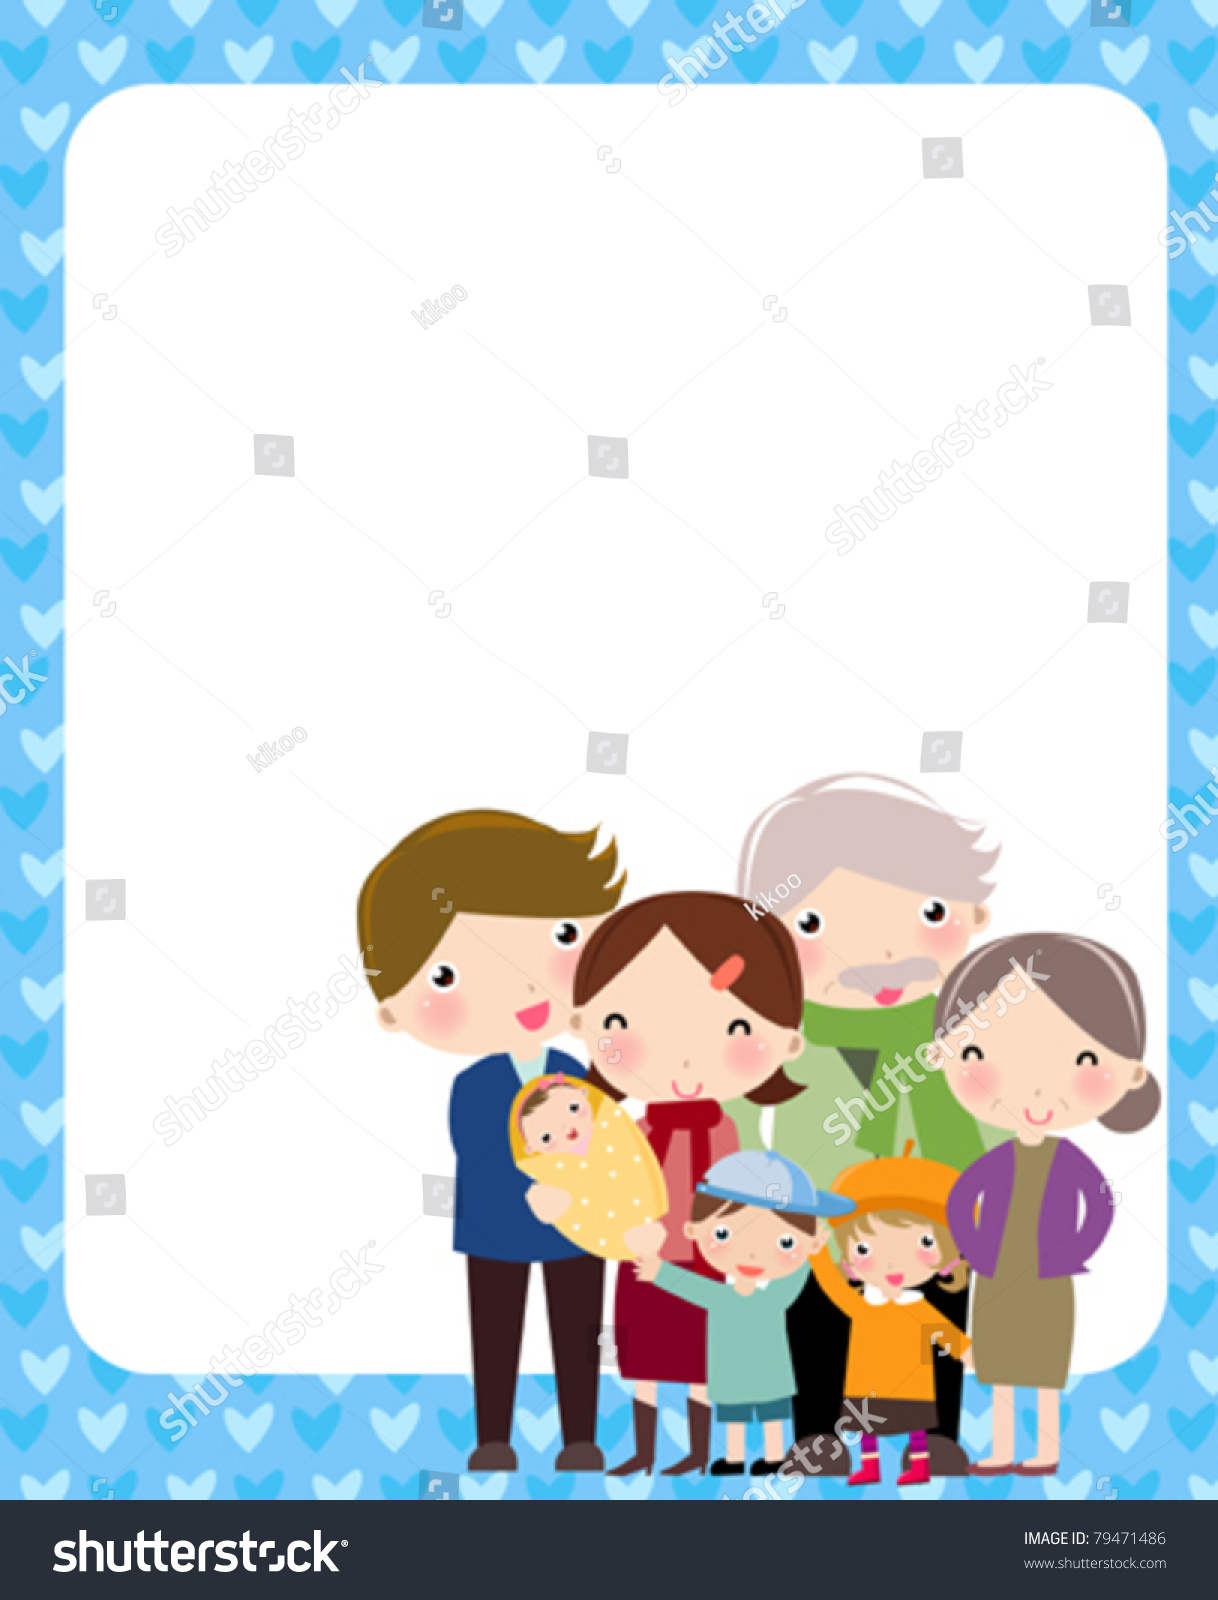 Kids Family Picture Frame Clipart